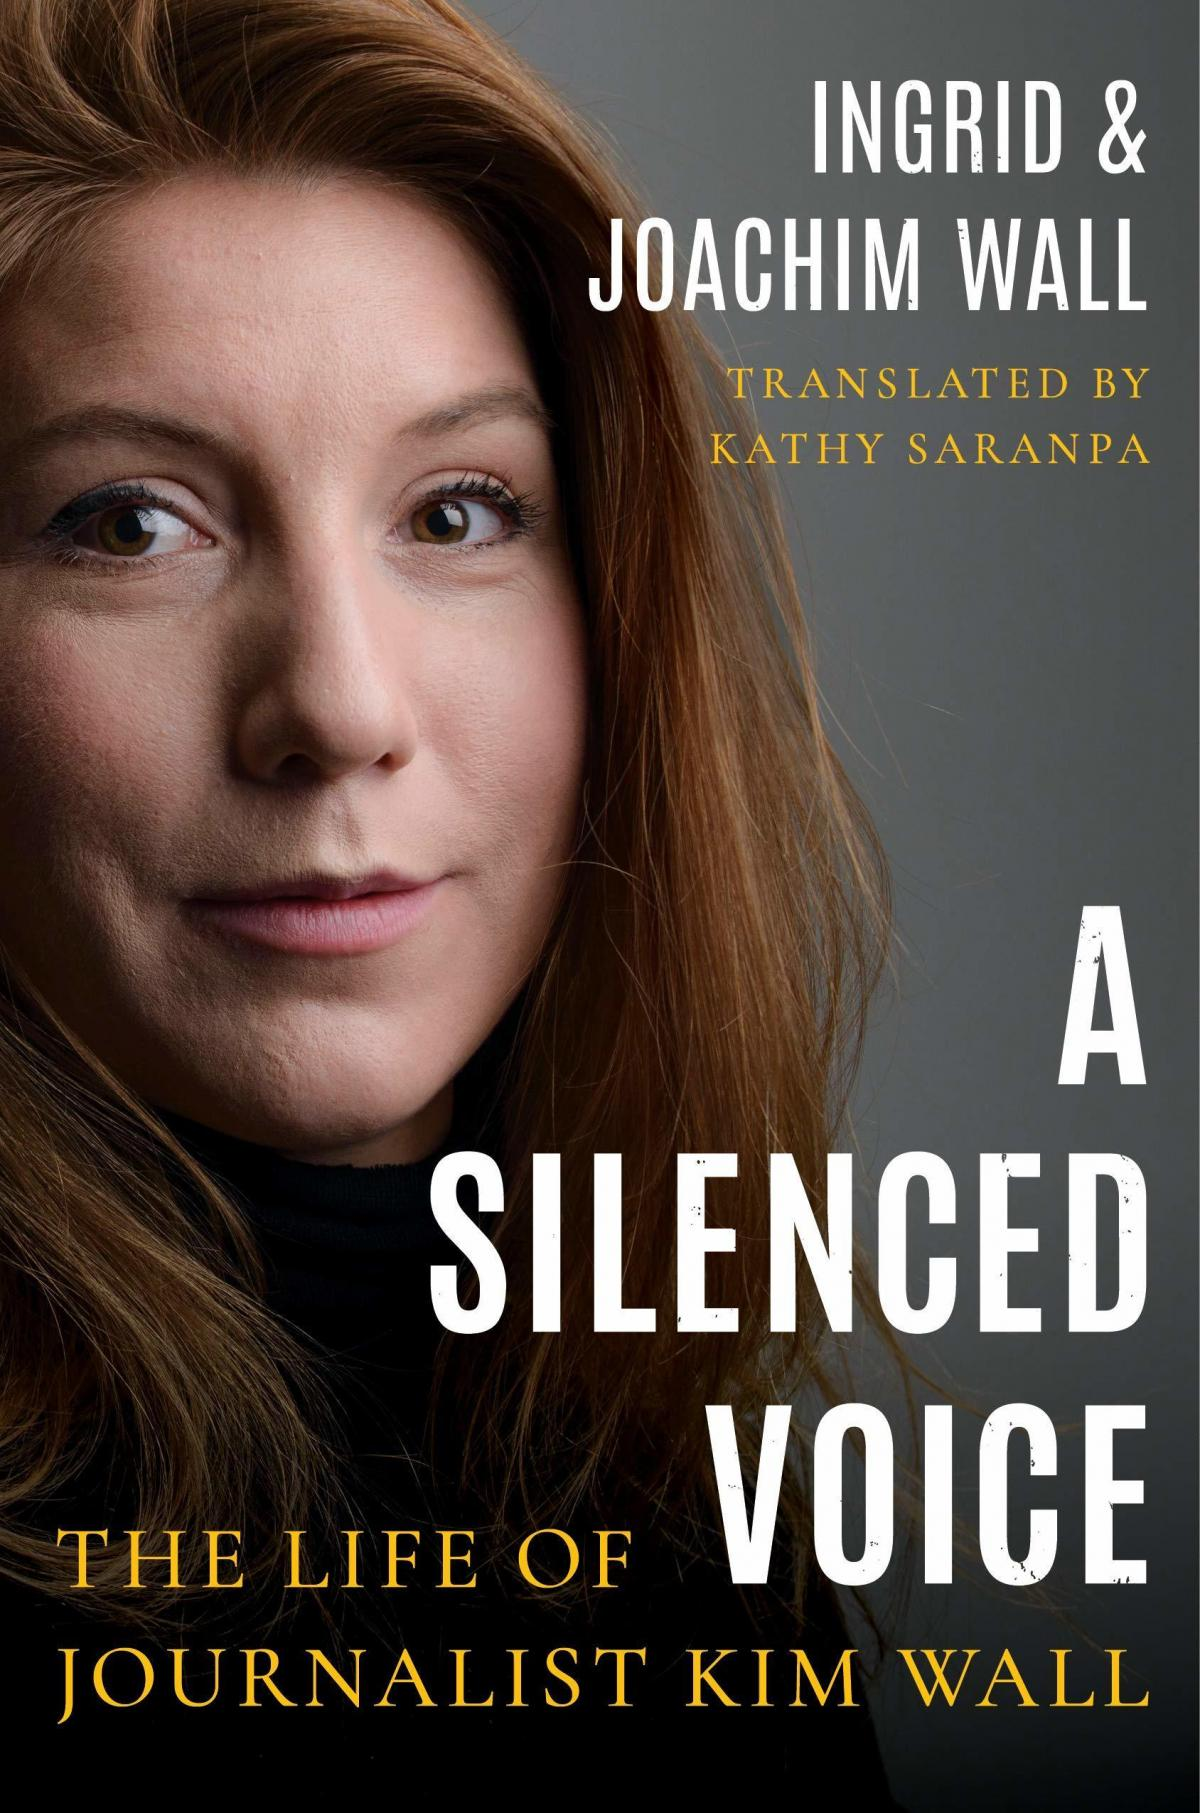 A Silenced Voice: The Life of Journalist Kim Wall, by Ingrid and Joachim Wall